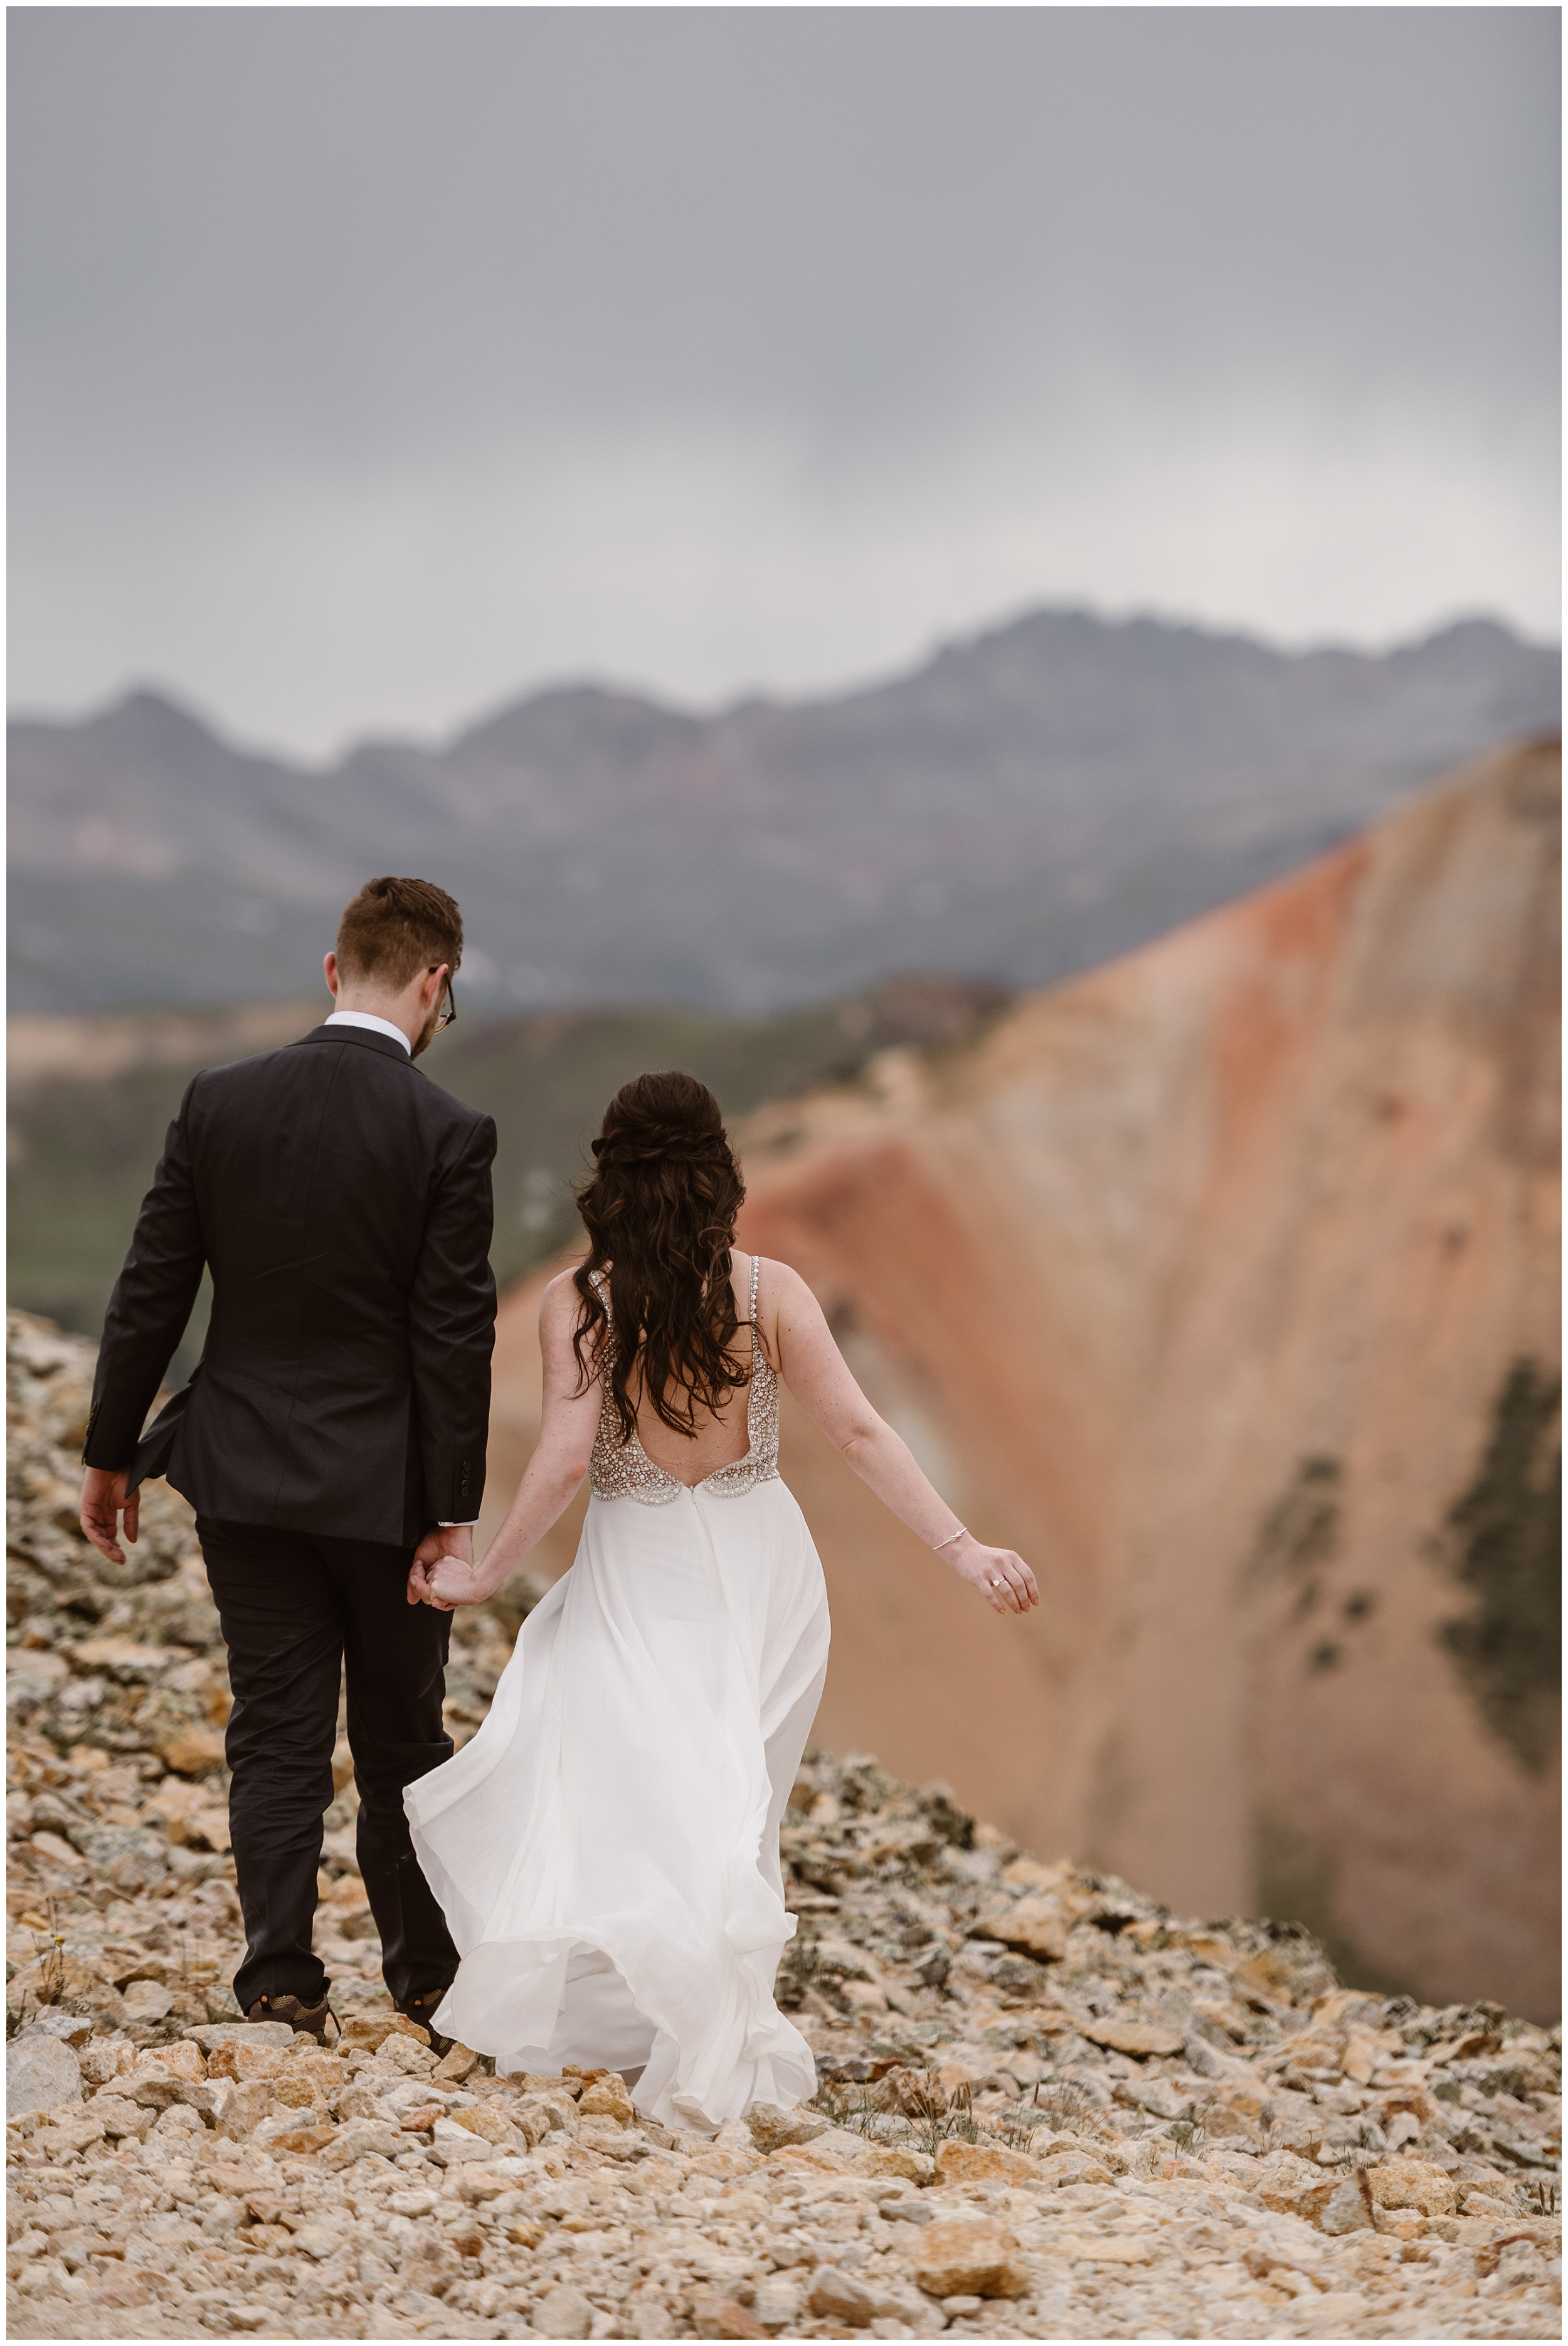 Katie and Logan, the bride and groom, hold hands and walk away from the camera, along the rocky path of the off road 4x4 area. Katie's dress whips around in the wind as they hike up toward a special location, one of their eloping ideas they had for their Colorado elopement.